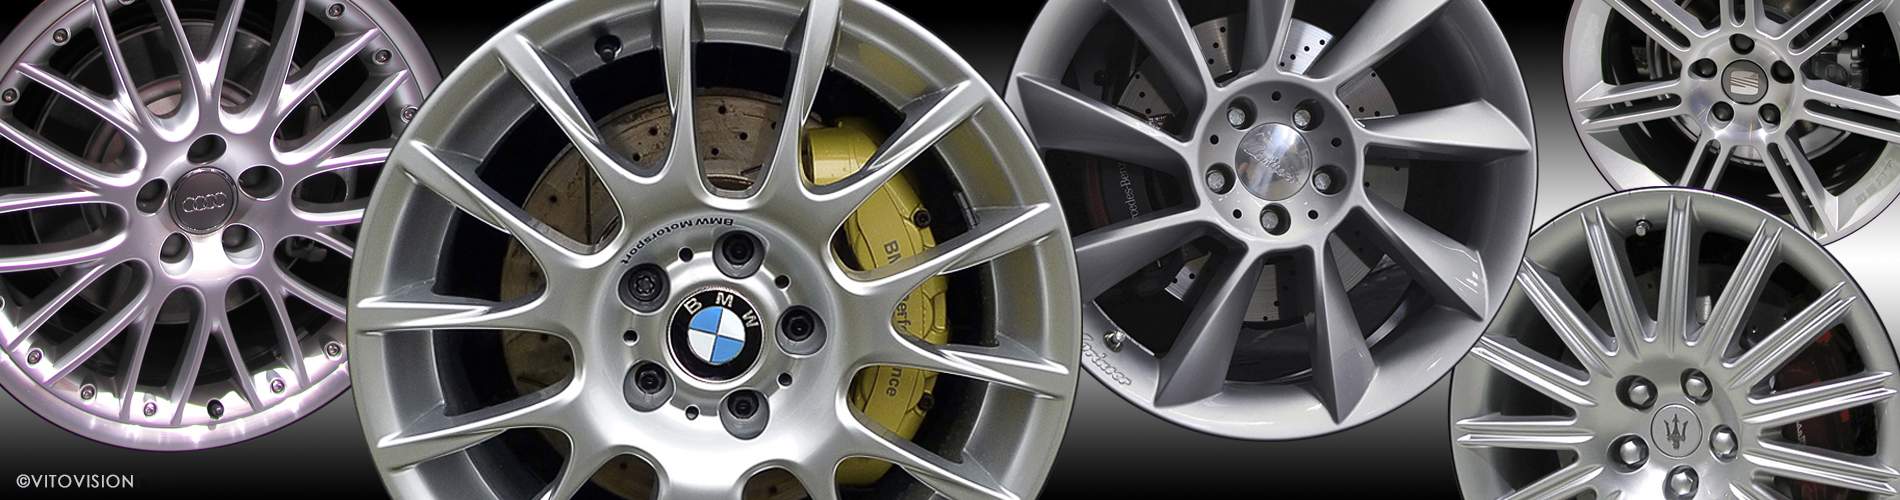 Wheel design from Vitovision for Audi, BMW, Seat, Maserati and other automotive manufacturer